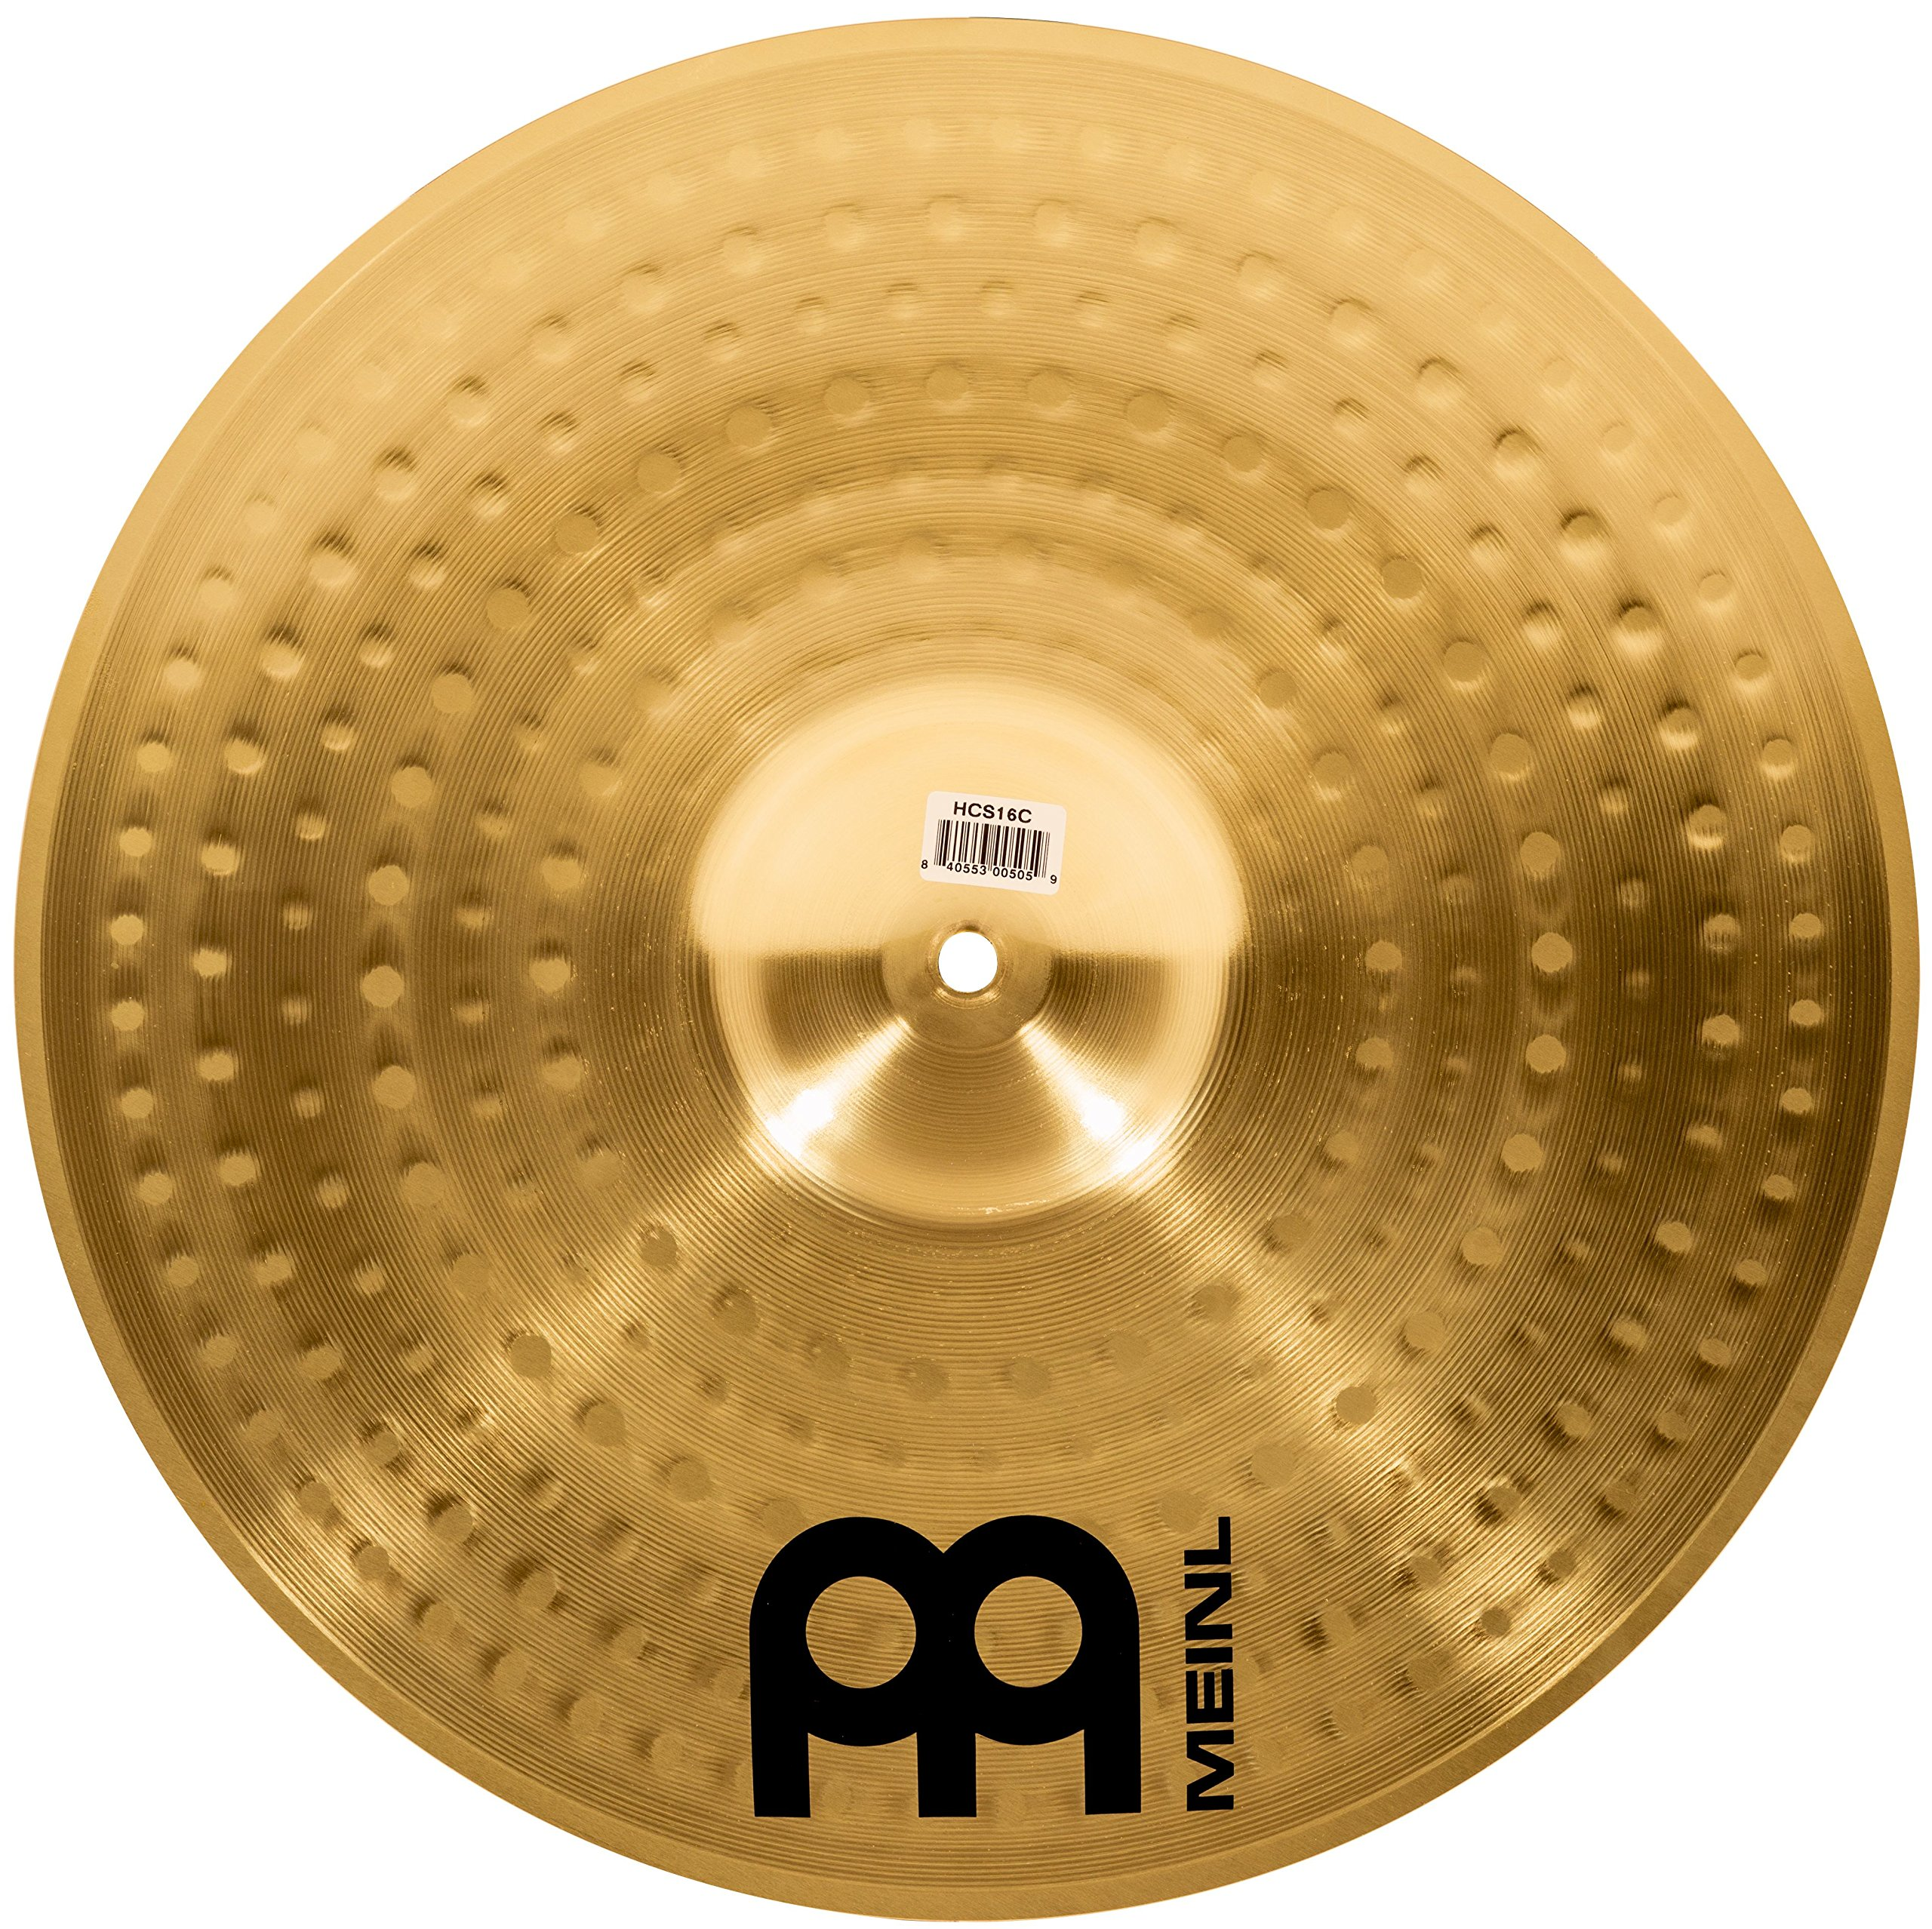 Meinl Cymbals HCS16C 16'' HCS Brass Crash Cymbal for Drum Set (VIDEO) by Meinl Cymbals (Image #2)